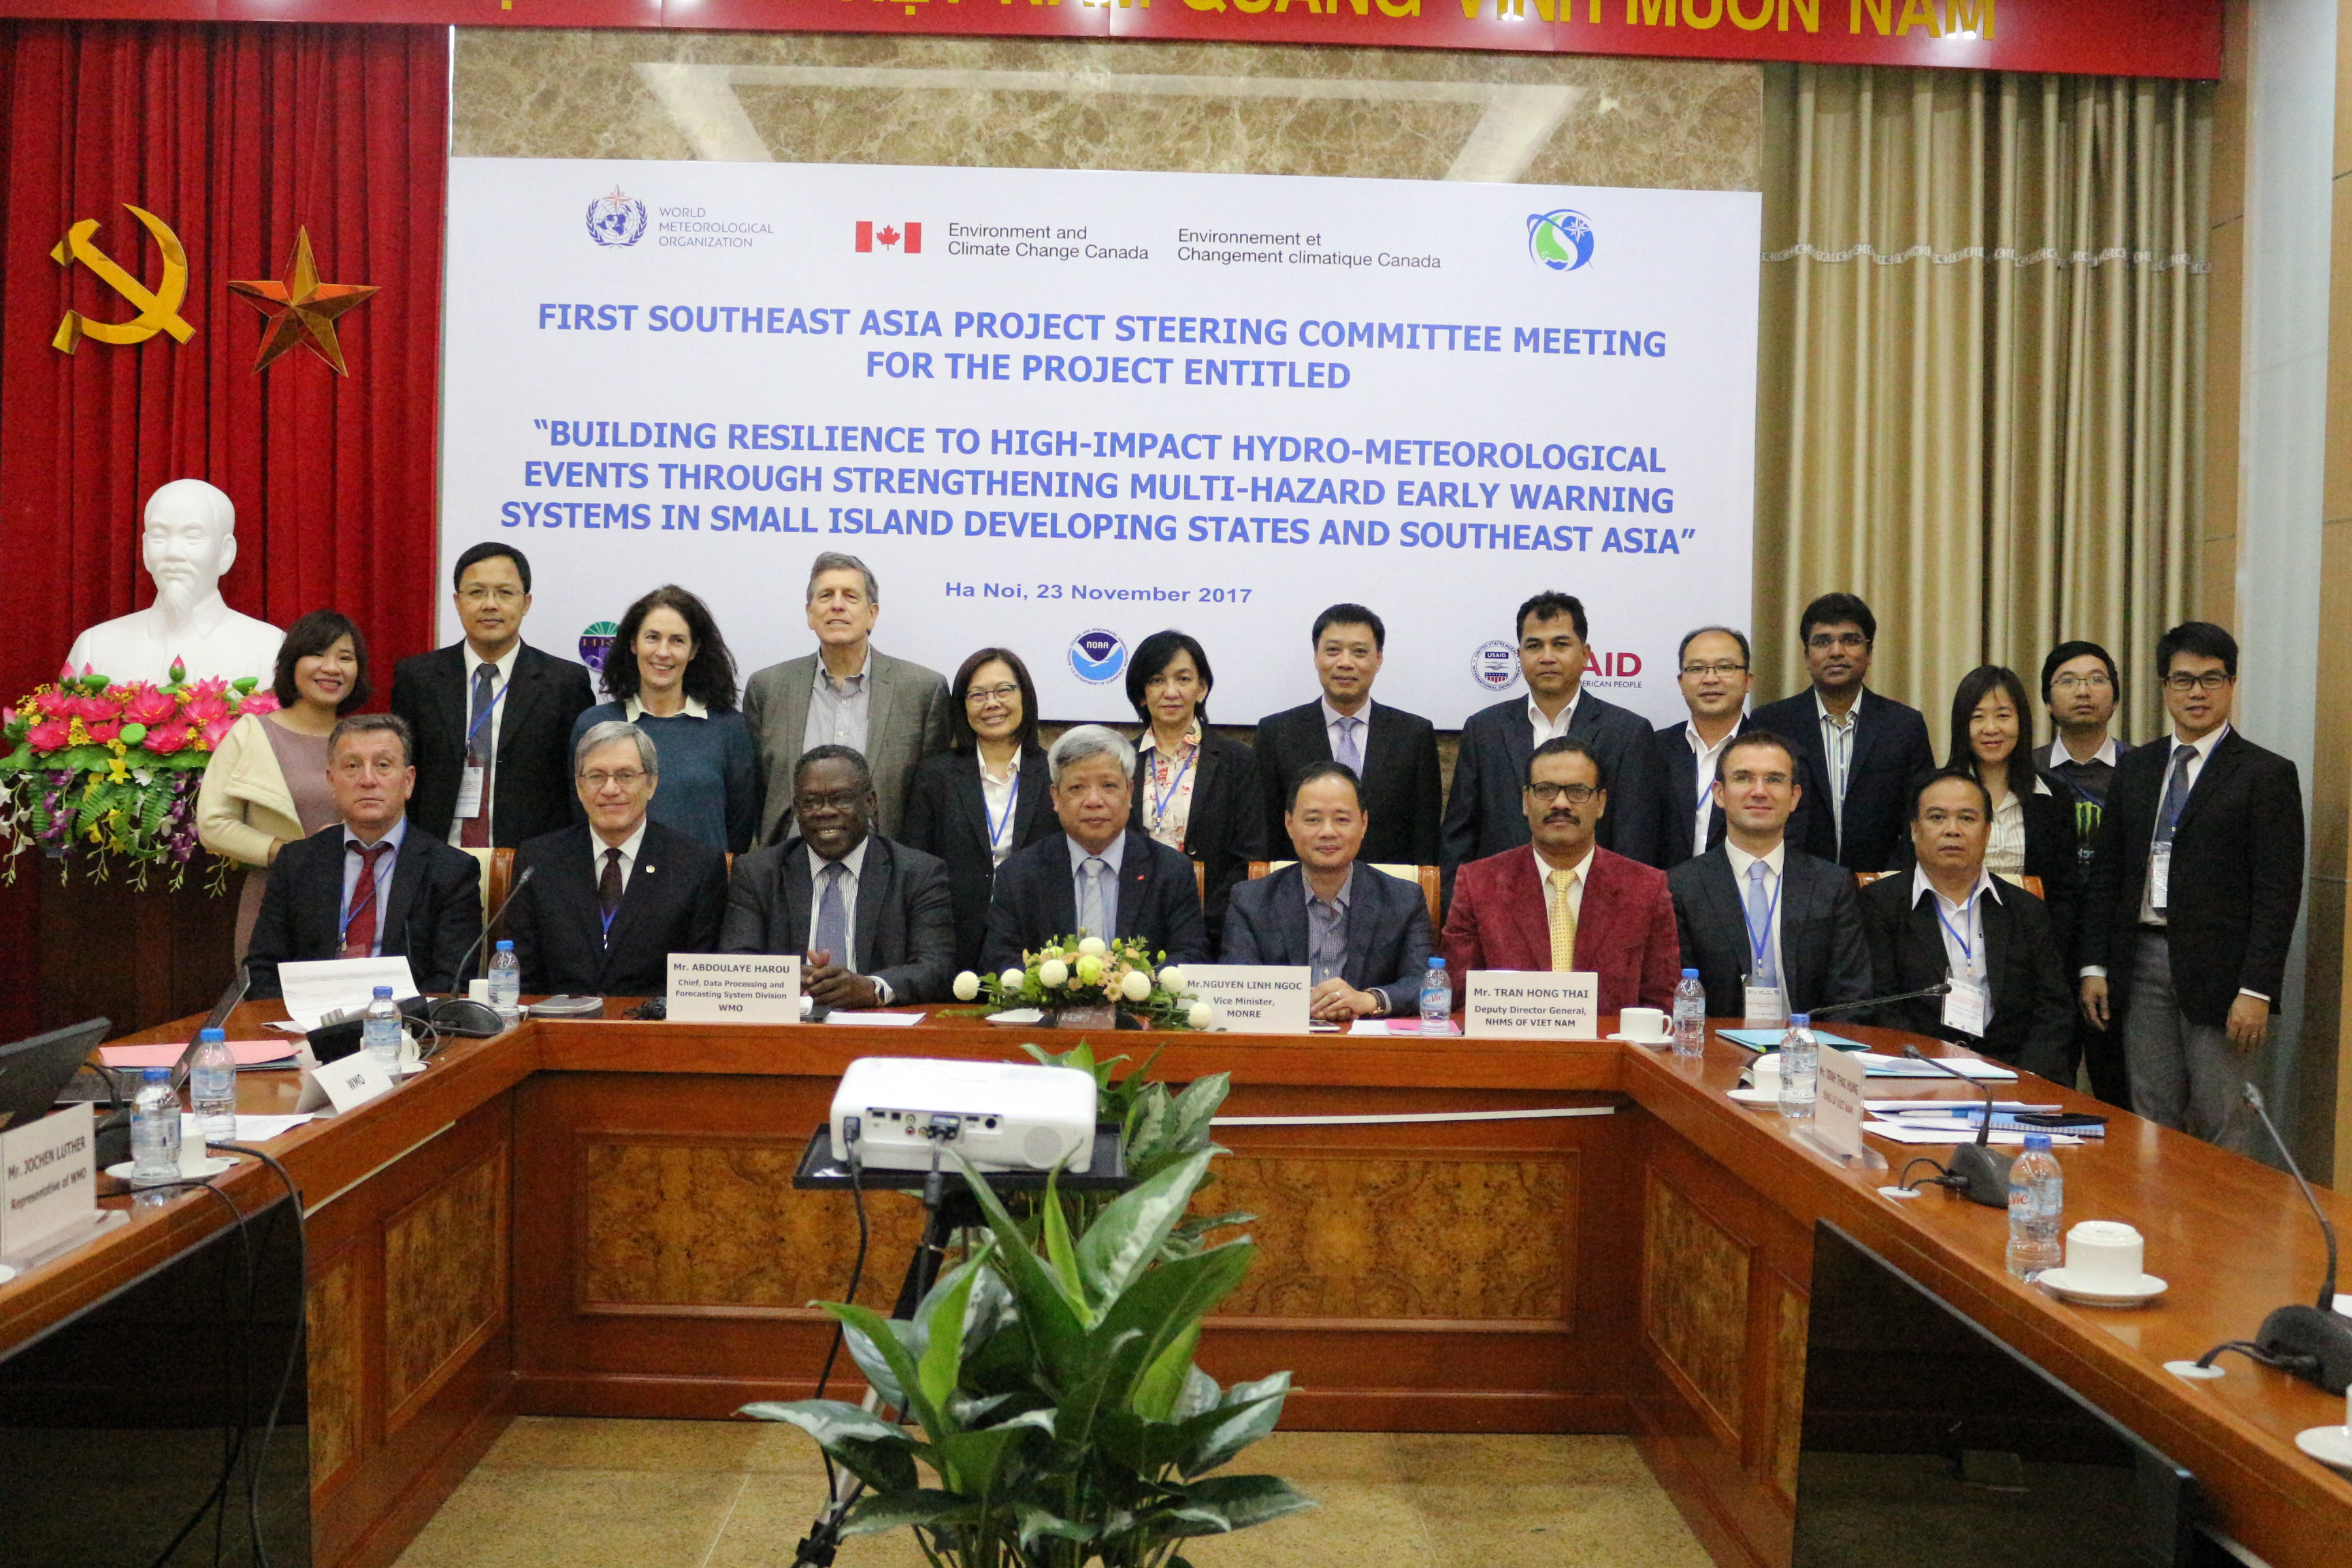 Southeast Asia strengthens multi-hazard early warning systems 2017